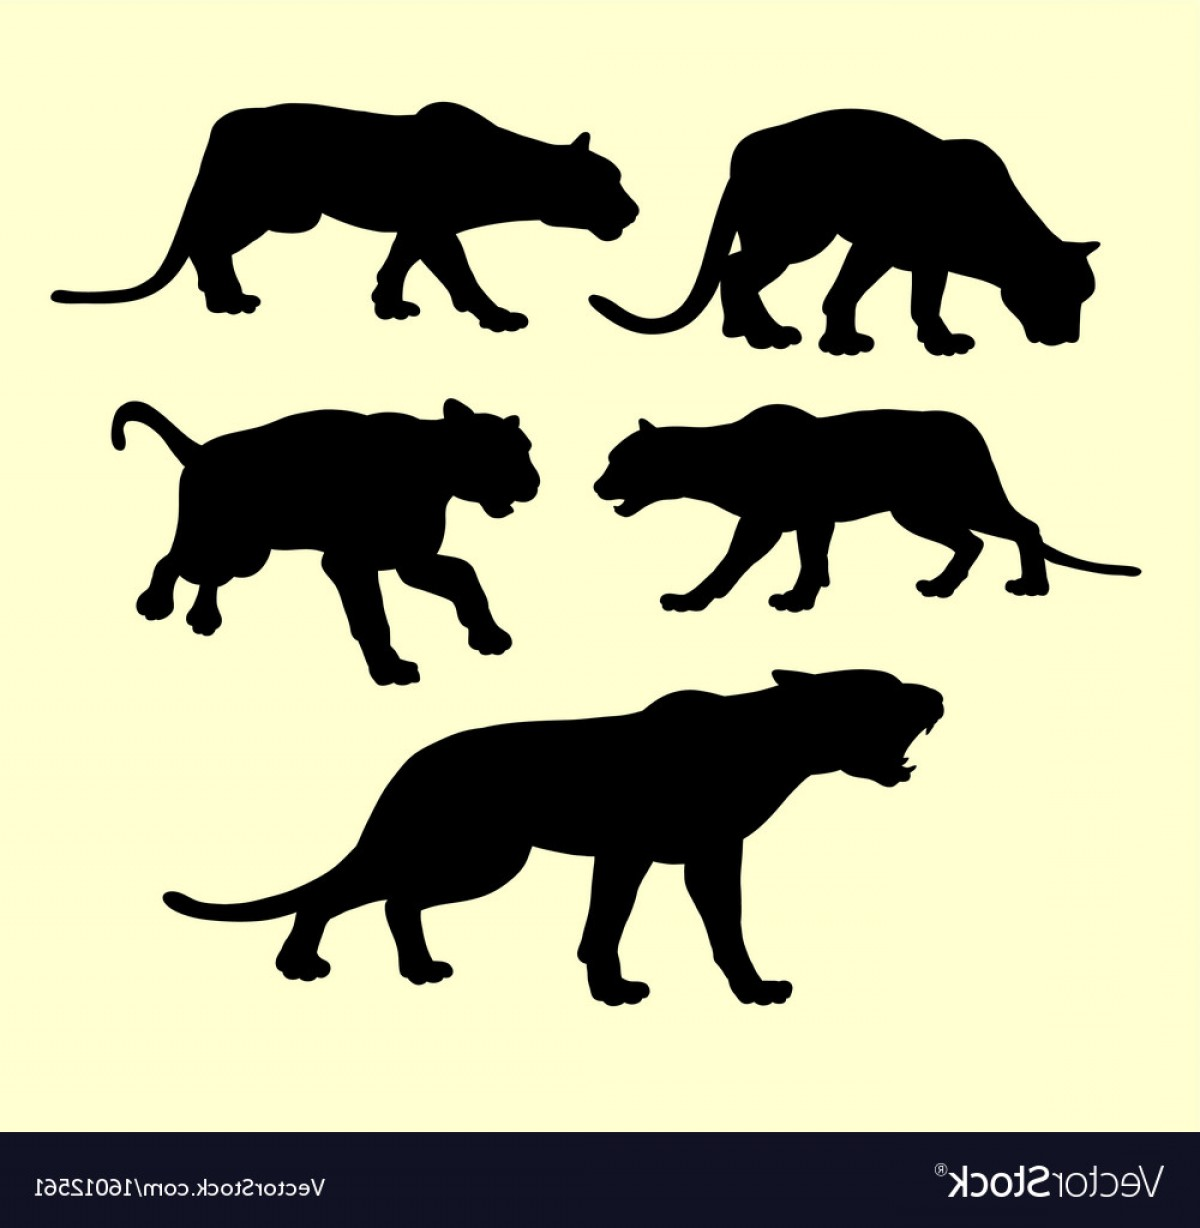 Panther Silhouette Vector: Puma Panther And Tiger Animal Silhouette Vector